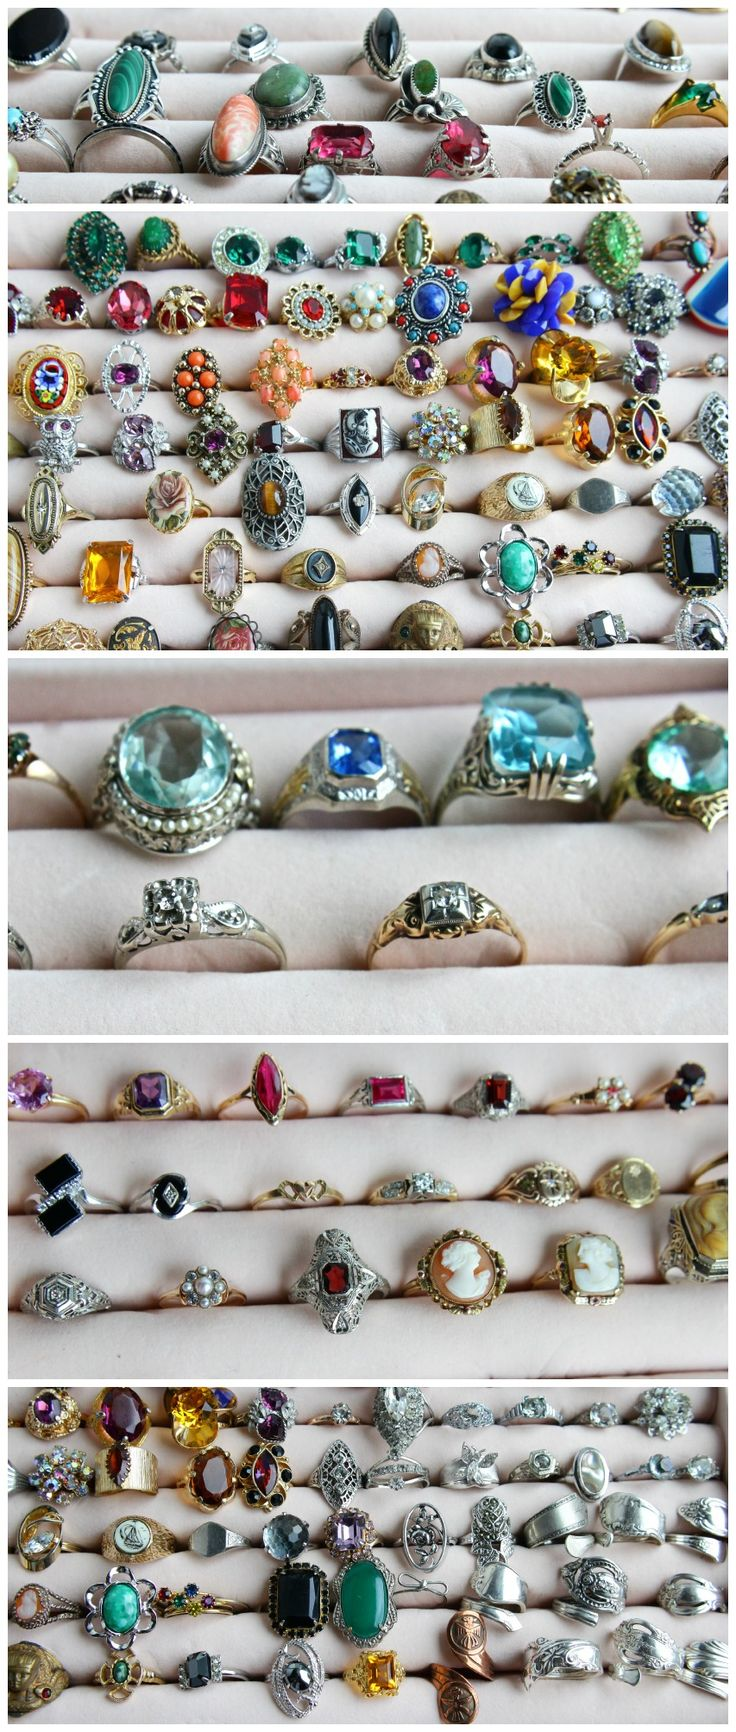 """Over 200 vintage & antique rings listed in www.maejeanvintage.etsy.com !  From costume, to sterling silver, to 18k white gold with diamonds! Diverse styles & prices to fit any budget. Whether it's an engagement ring, wedding ring, promise ring, right hand ring, cocktail ring, or """"just because"""" ring, we've got you covered!  Browse our rings here: https://www.etsy.com/shop/MaejeanVINTAGE?section_id=7131651"""